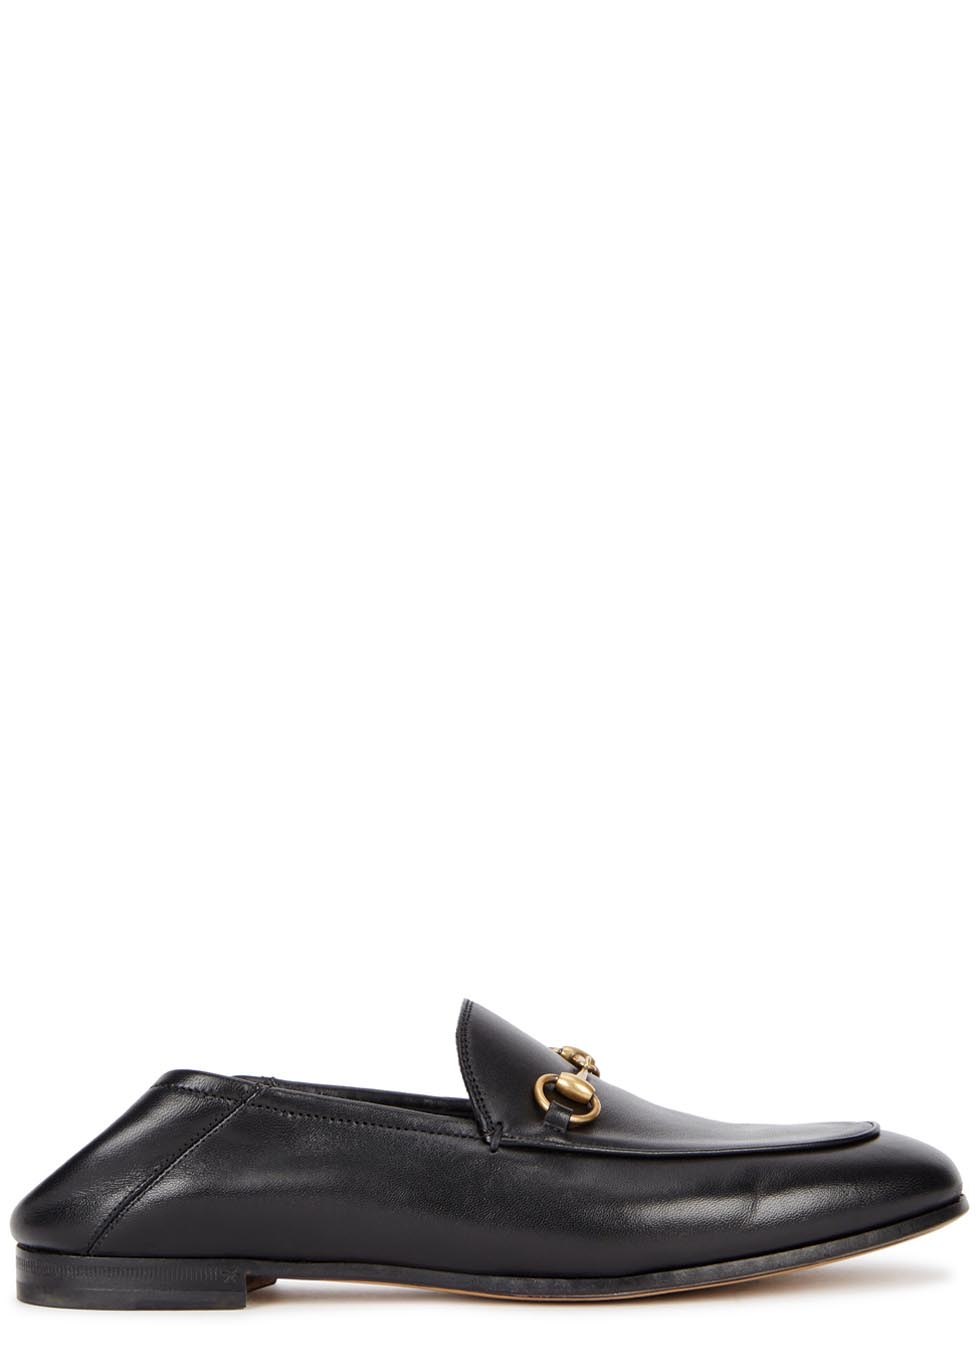 Brixton black horsebit leather loafers